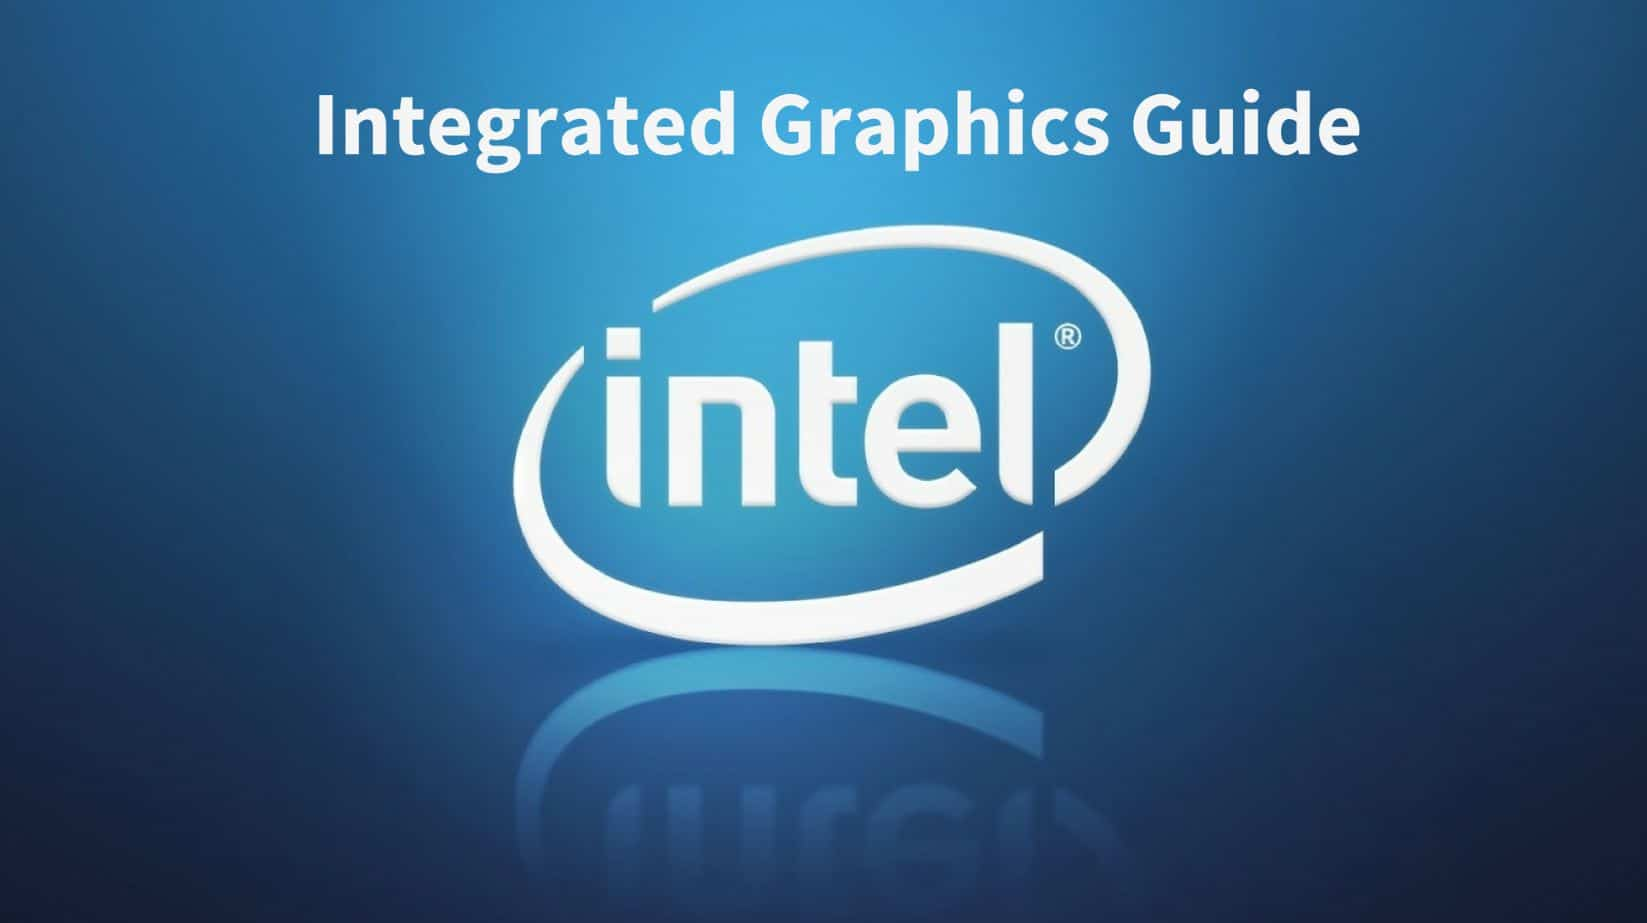 Intel UHD Graphics: The Ultimate Guide to Improve Performance